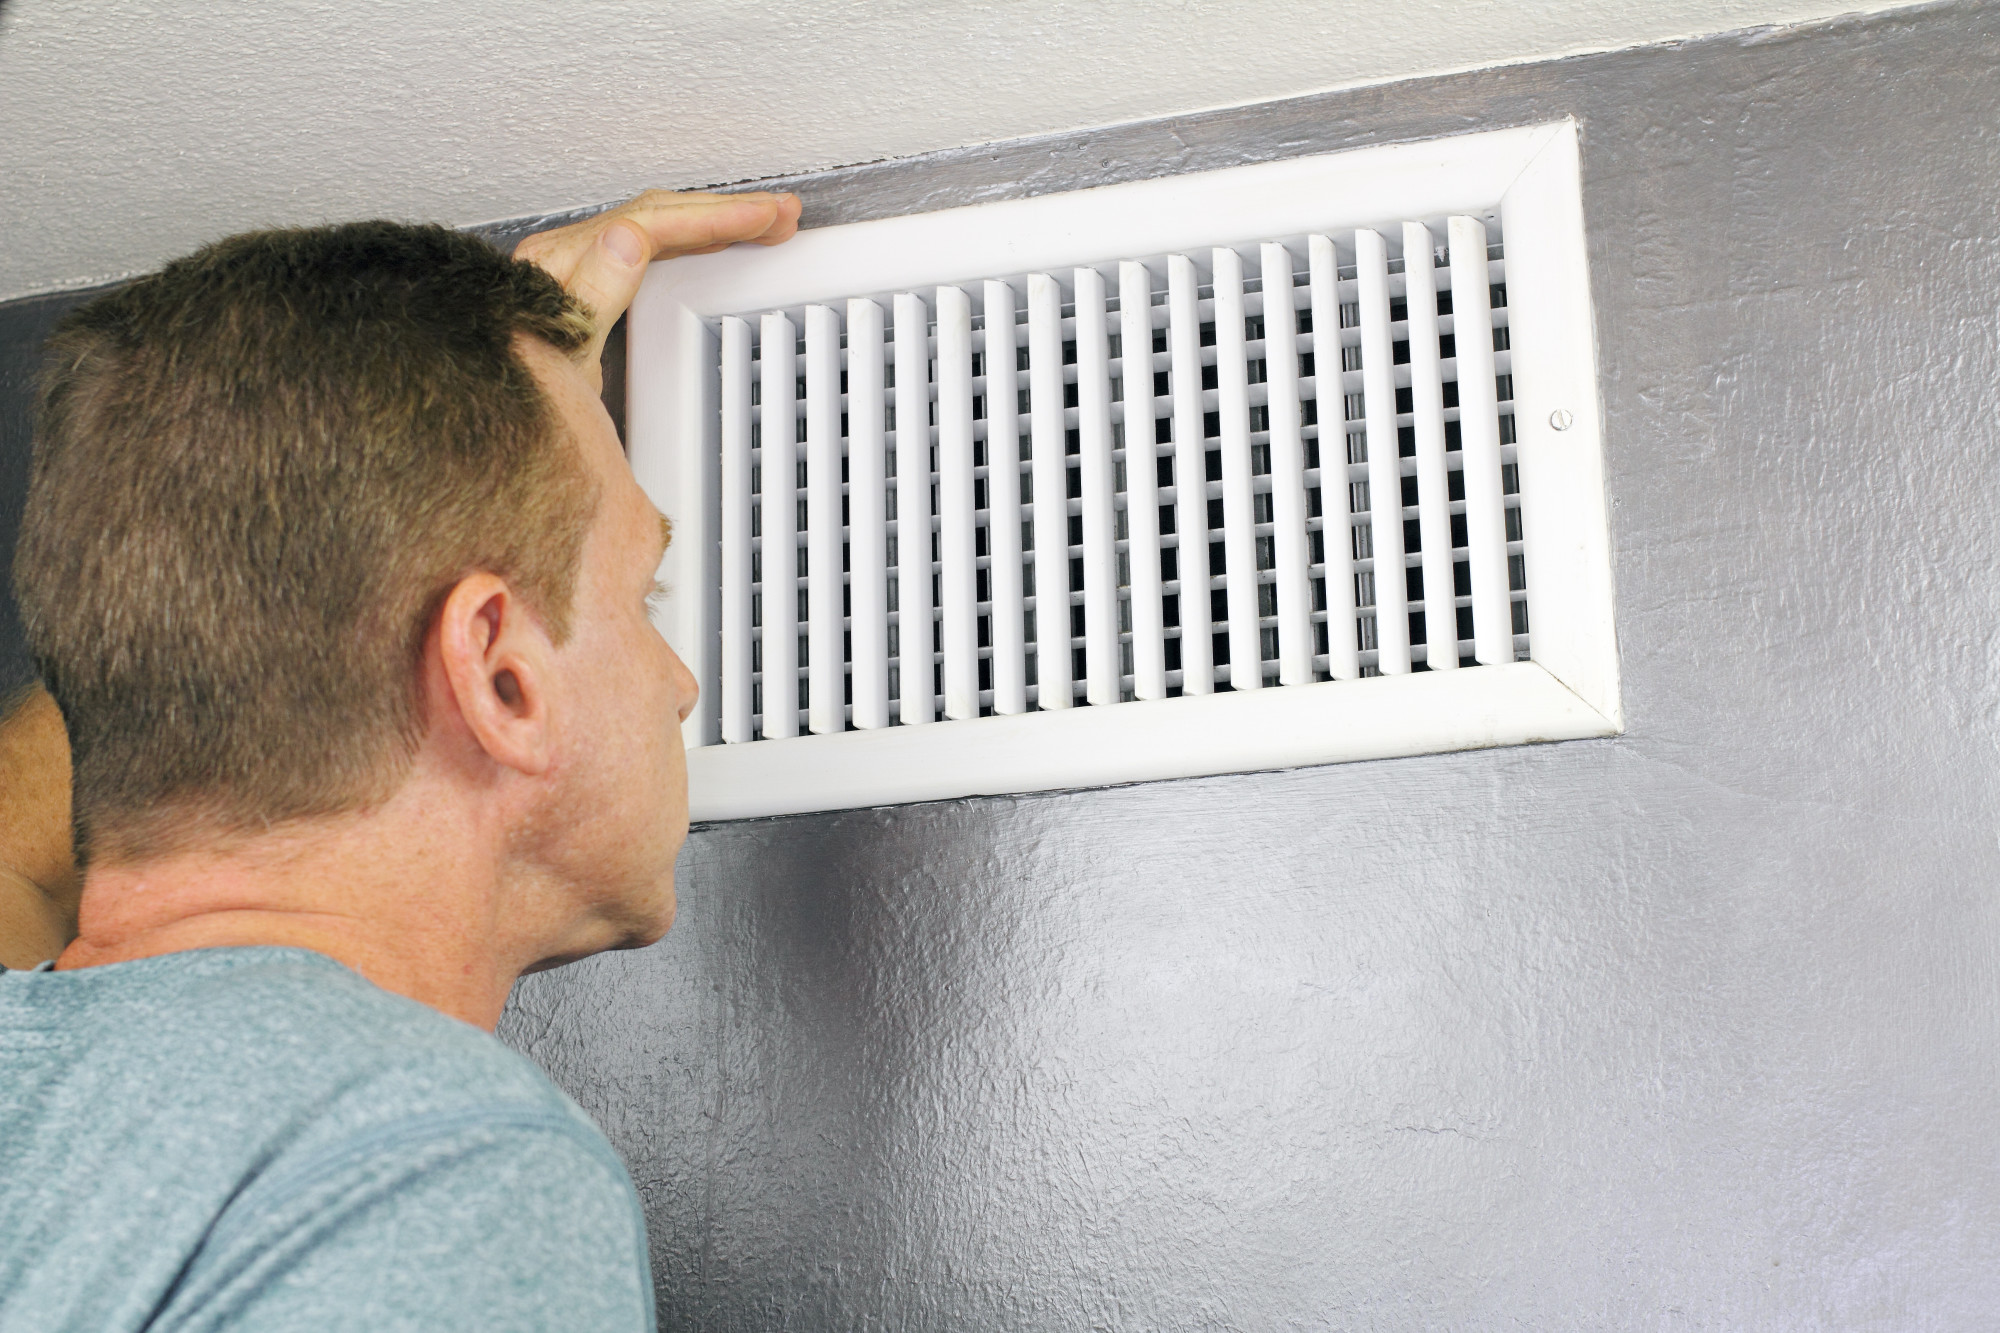 5 Warning Signs Your Air Ducts Need Cleaning